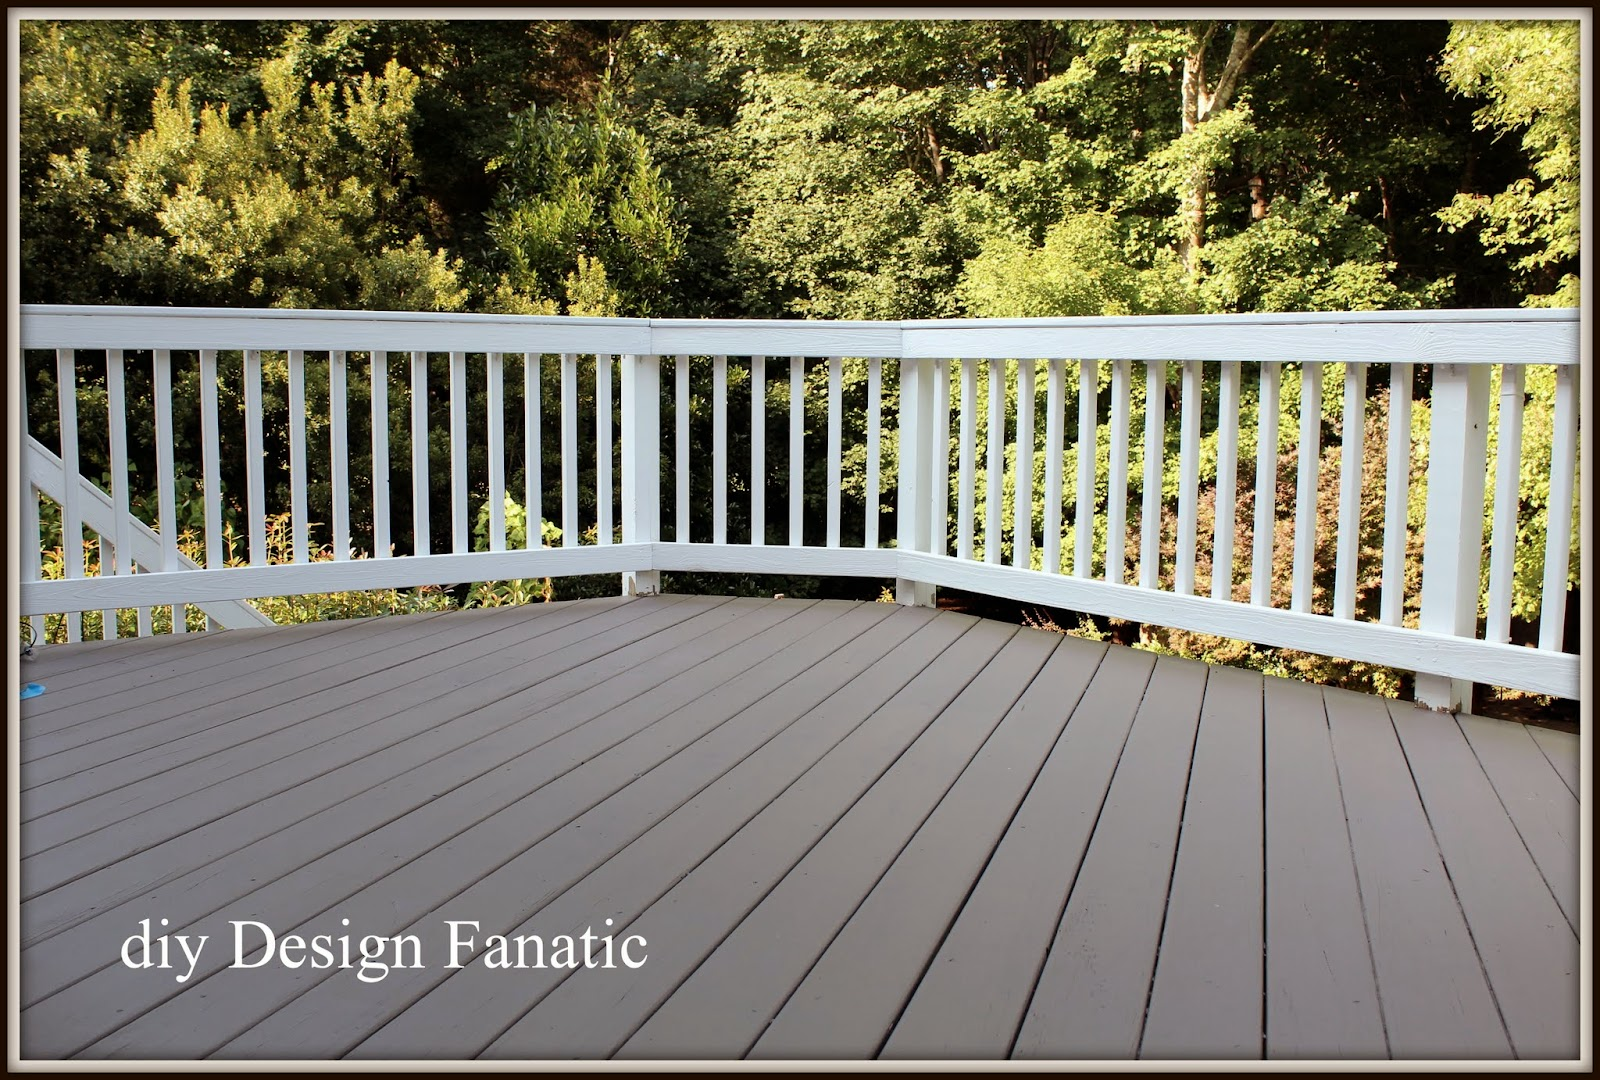 diy design fanatic refinishing our deck